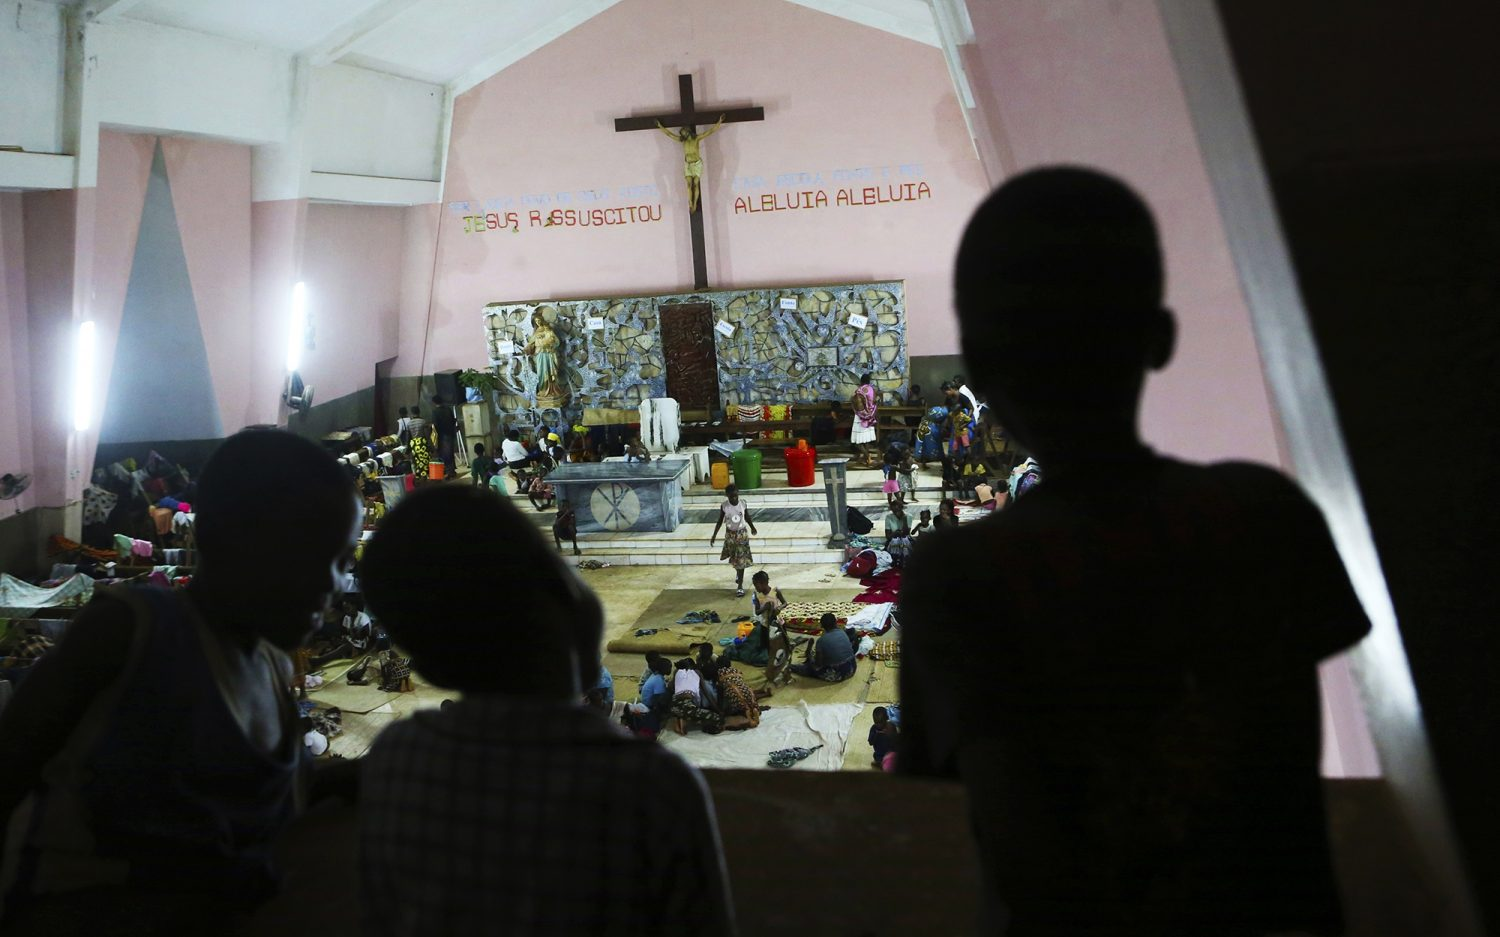 Mozambique's war on terror could spread